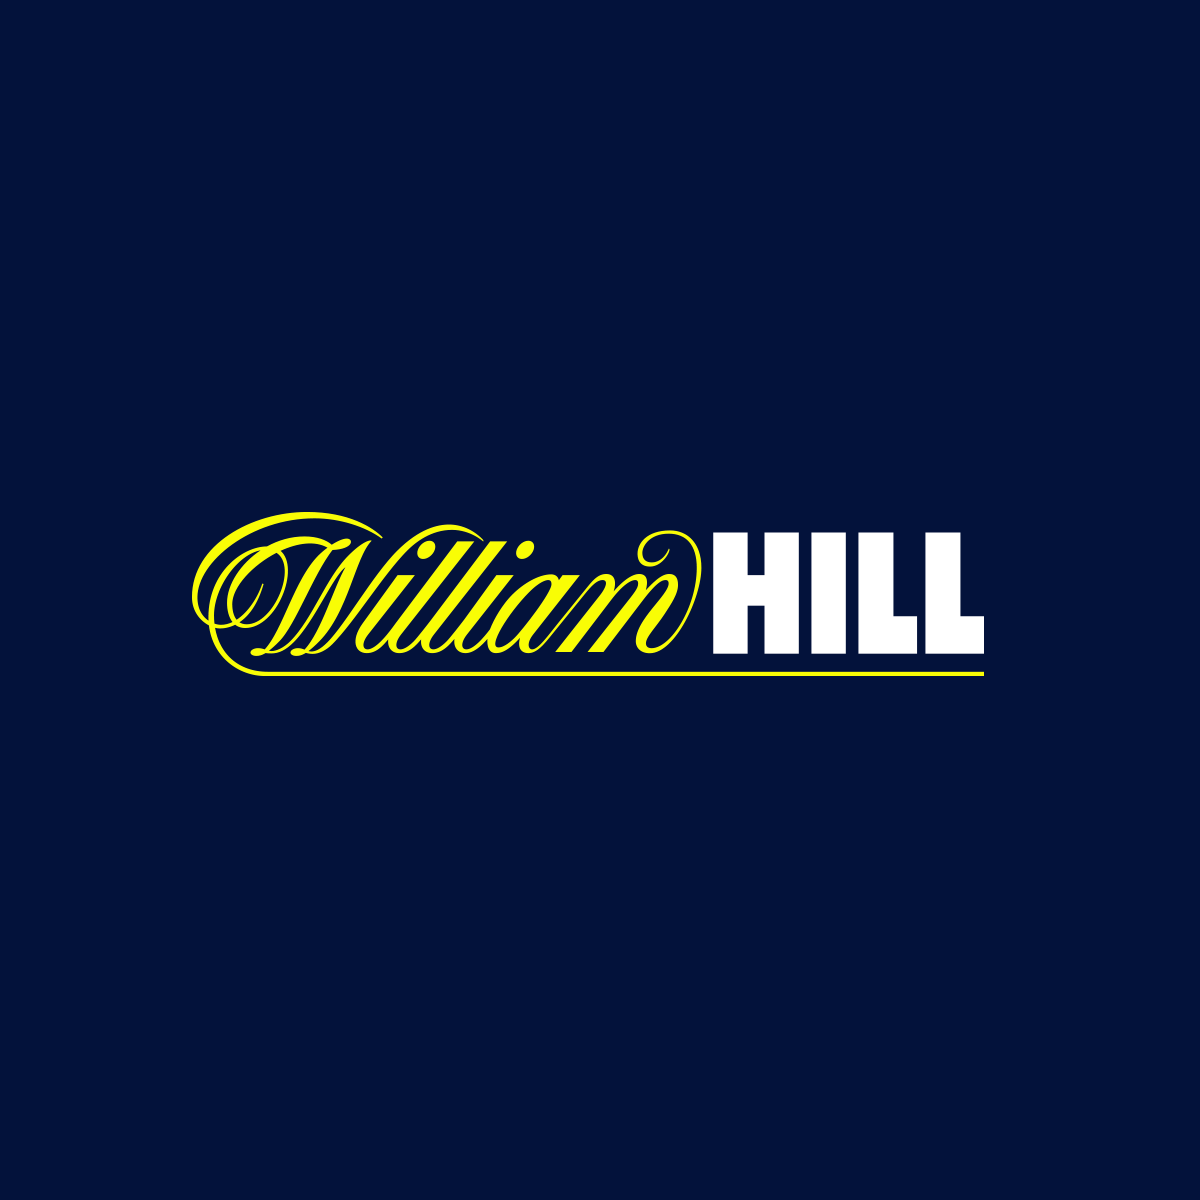 8. William hill